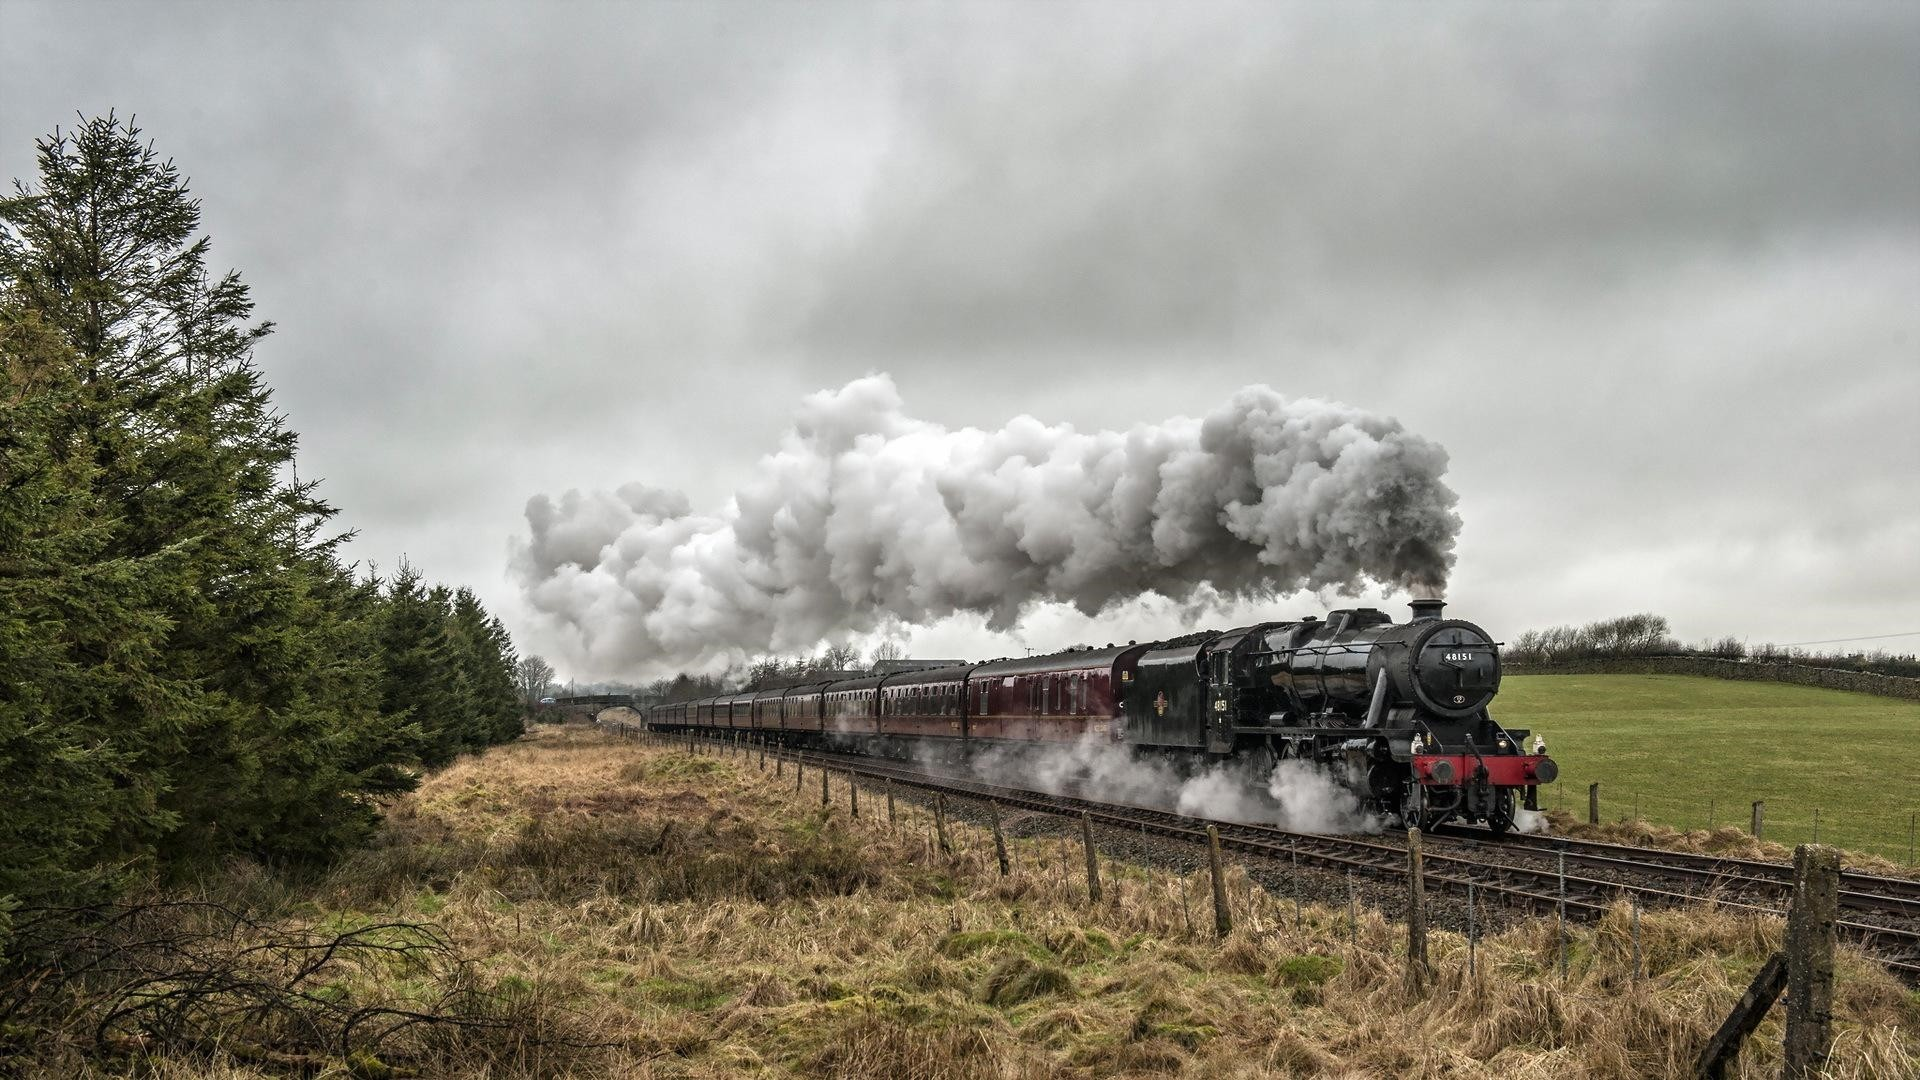 Steam Train Wallpaper image hd